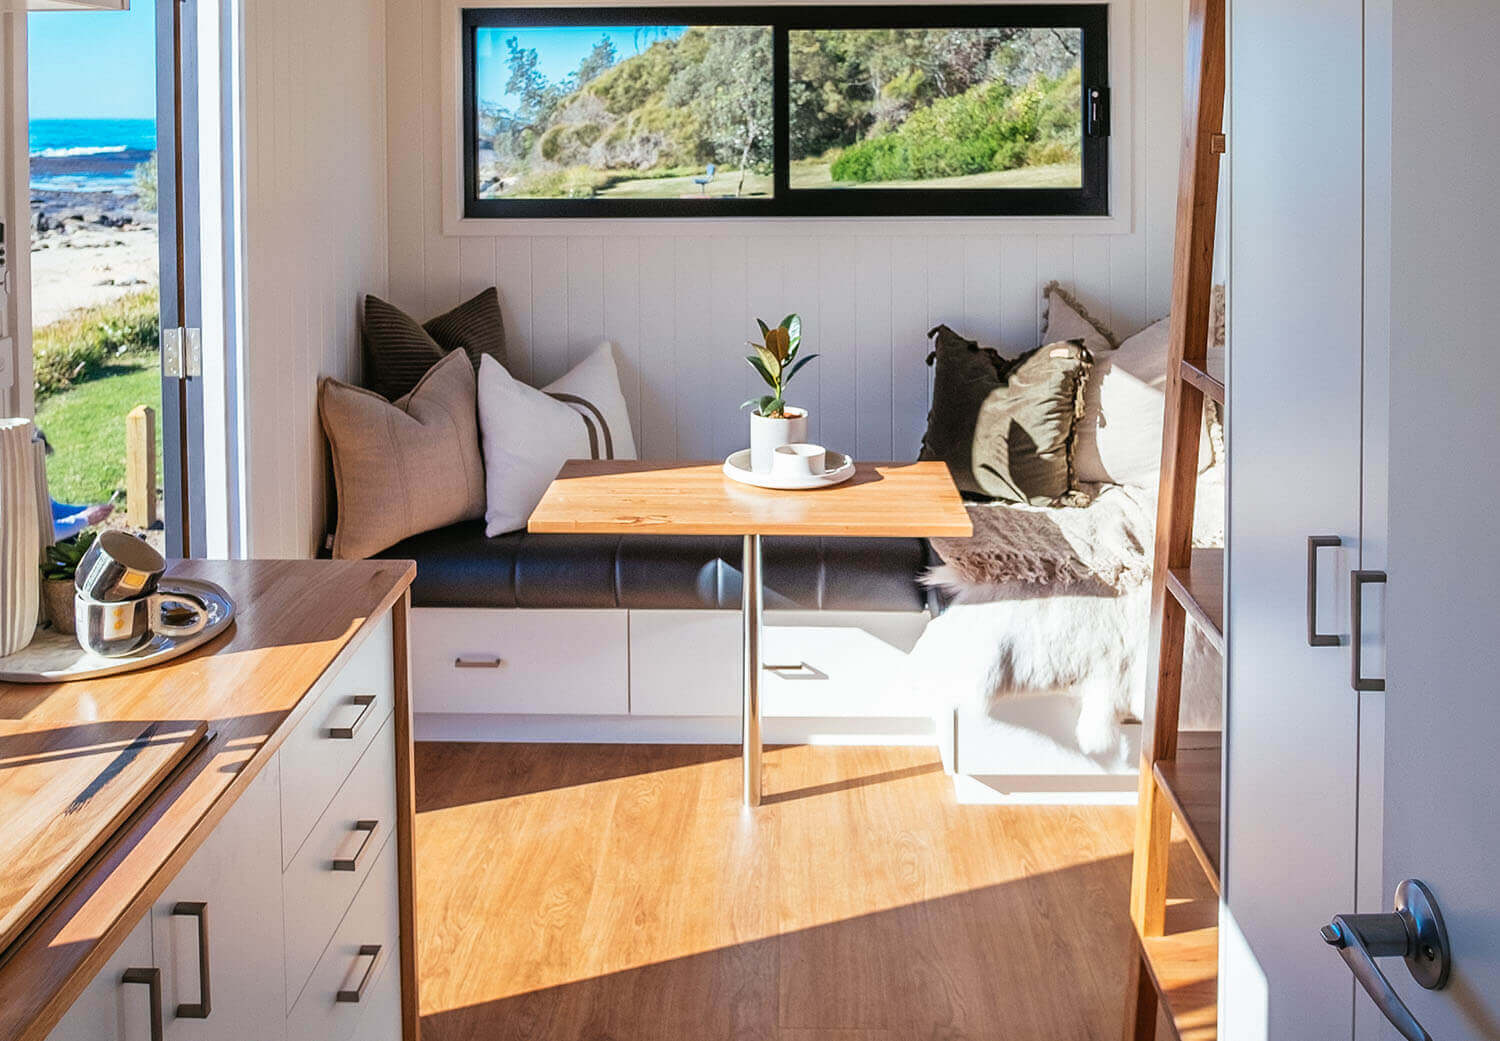 4800sl_0006_Tiny Home - Independent Series 4800 Kitchen Lounge